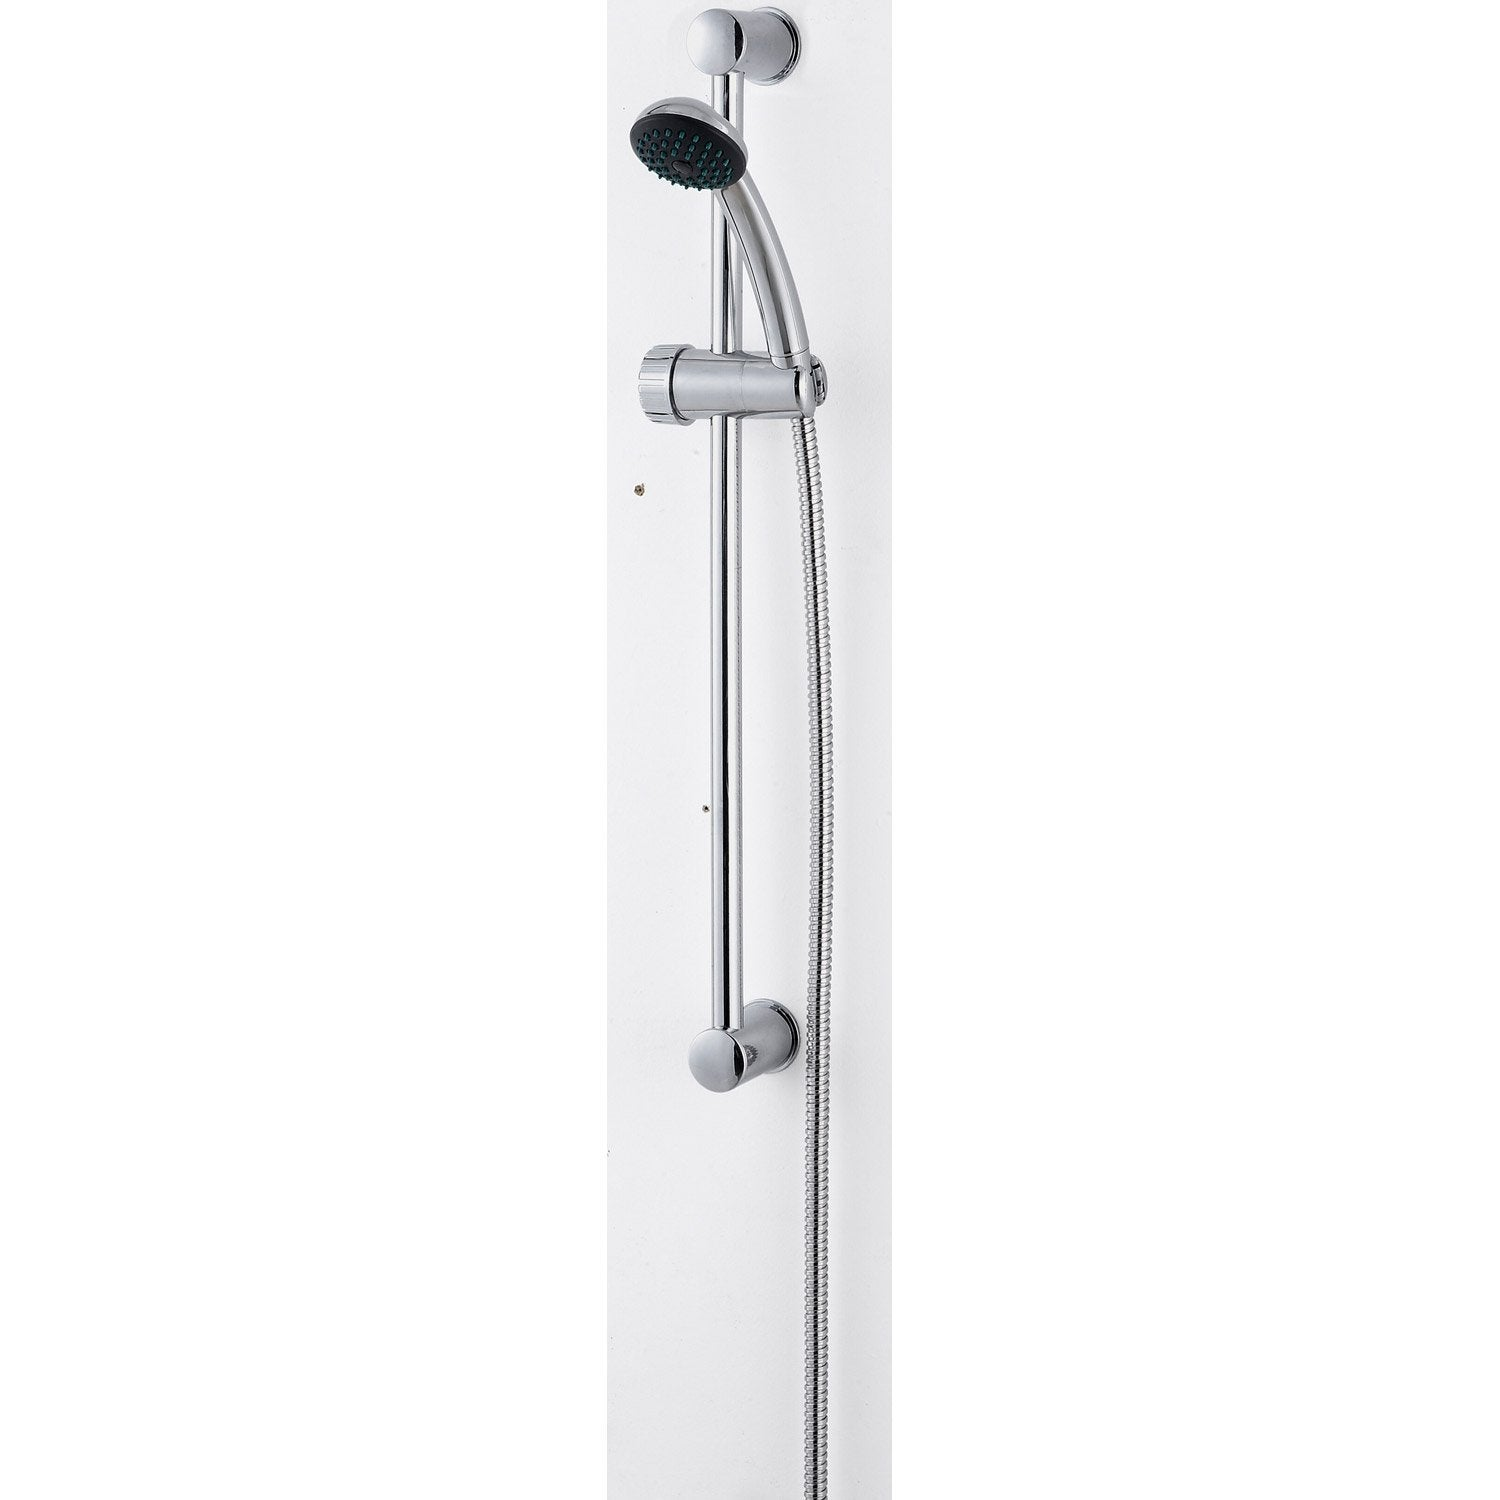 Ensemble de douche 3 jets basic 3 chrom leroy merlin for Ensemble de douche leroy merlin